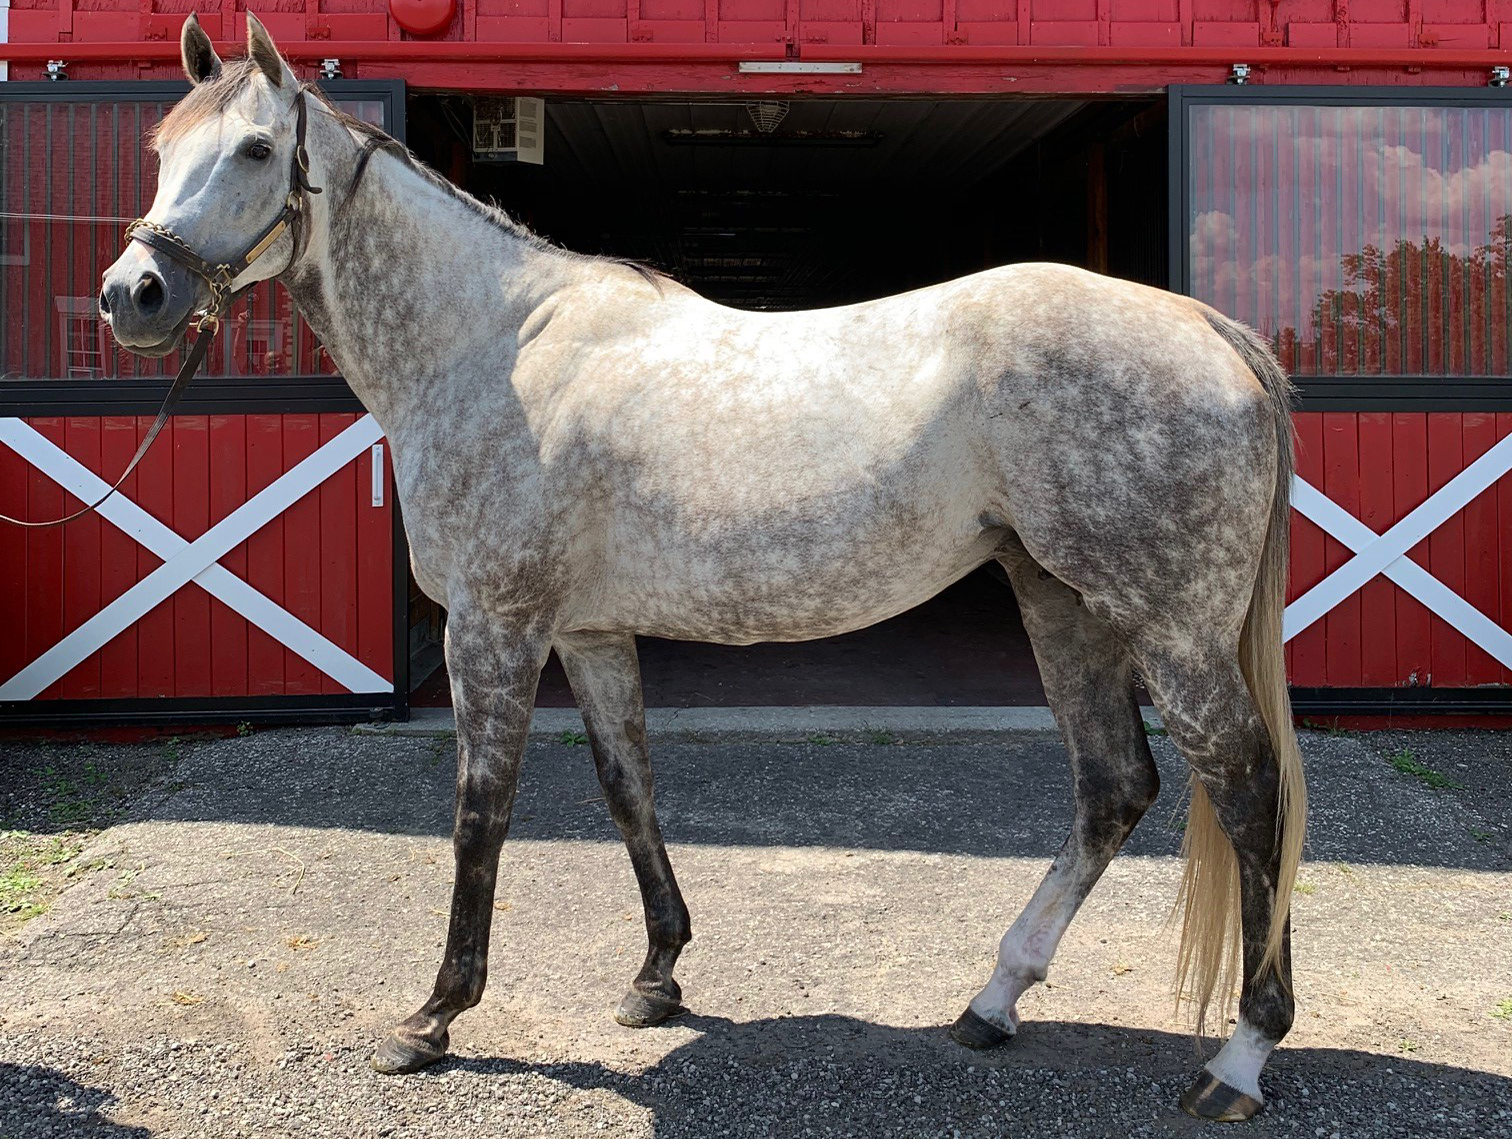 sIREN'S sONG - Unbridled's Song / Misty Mission2019: B.F. x More Than Ready